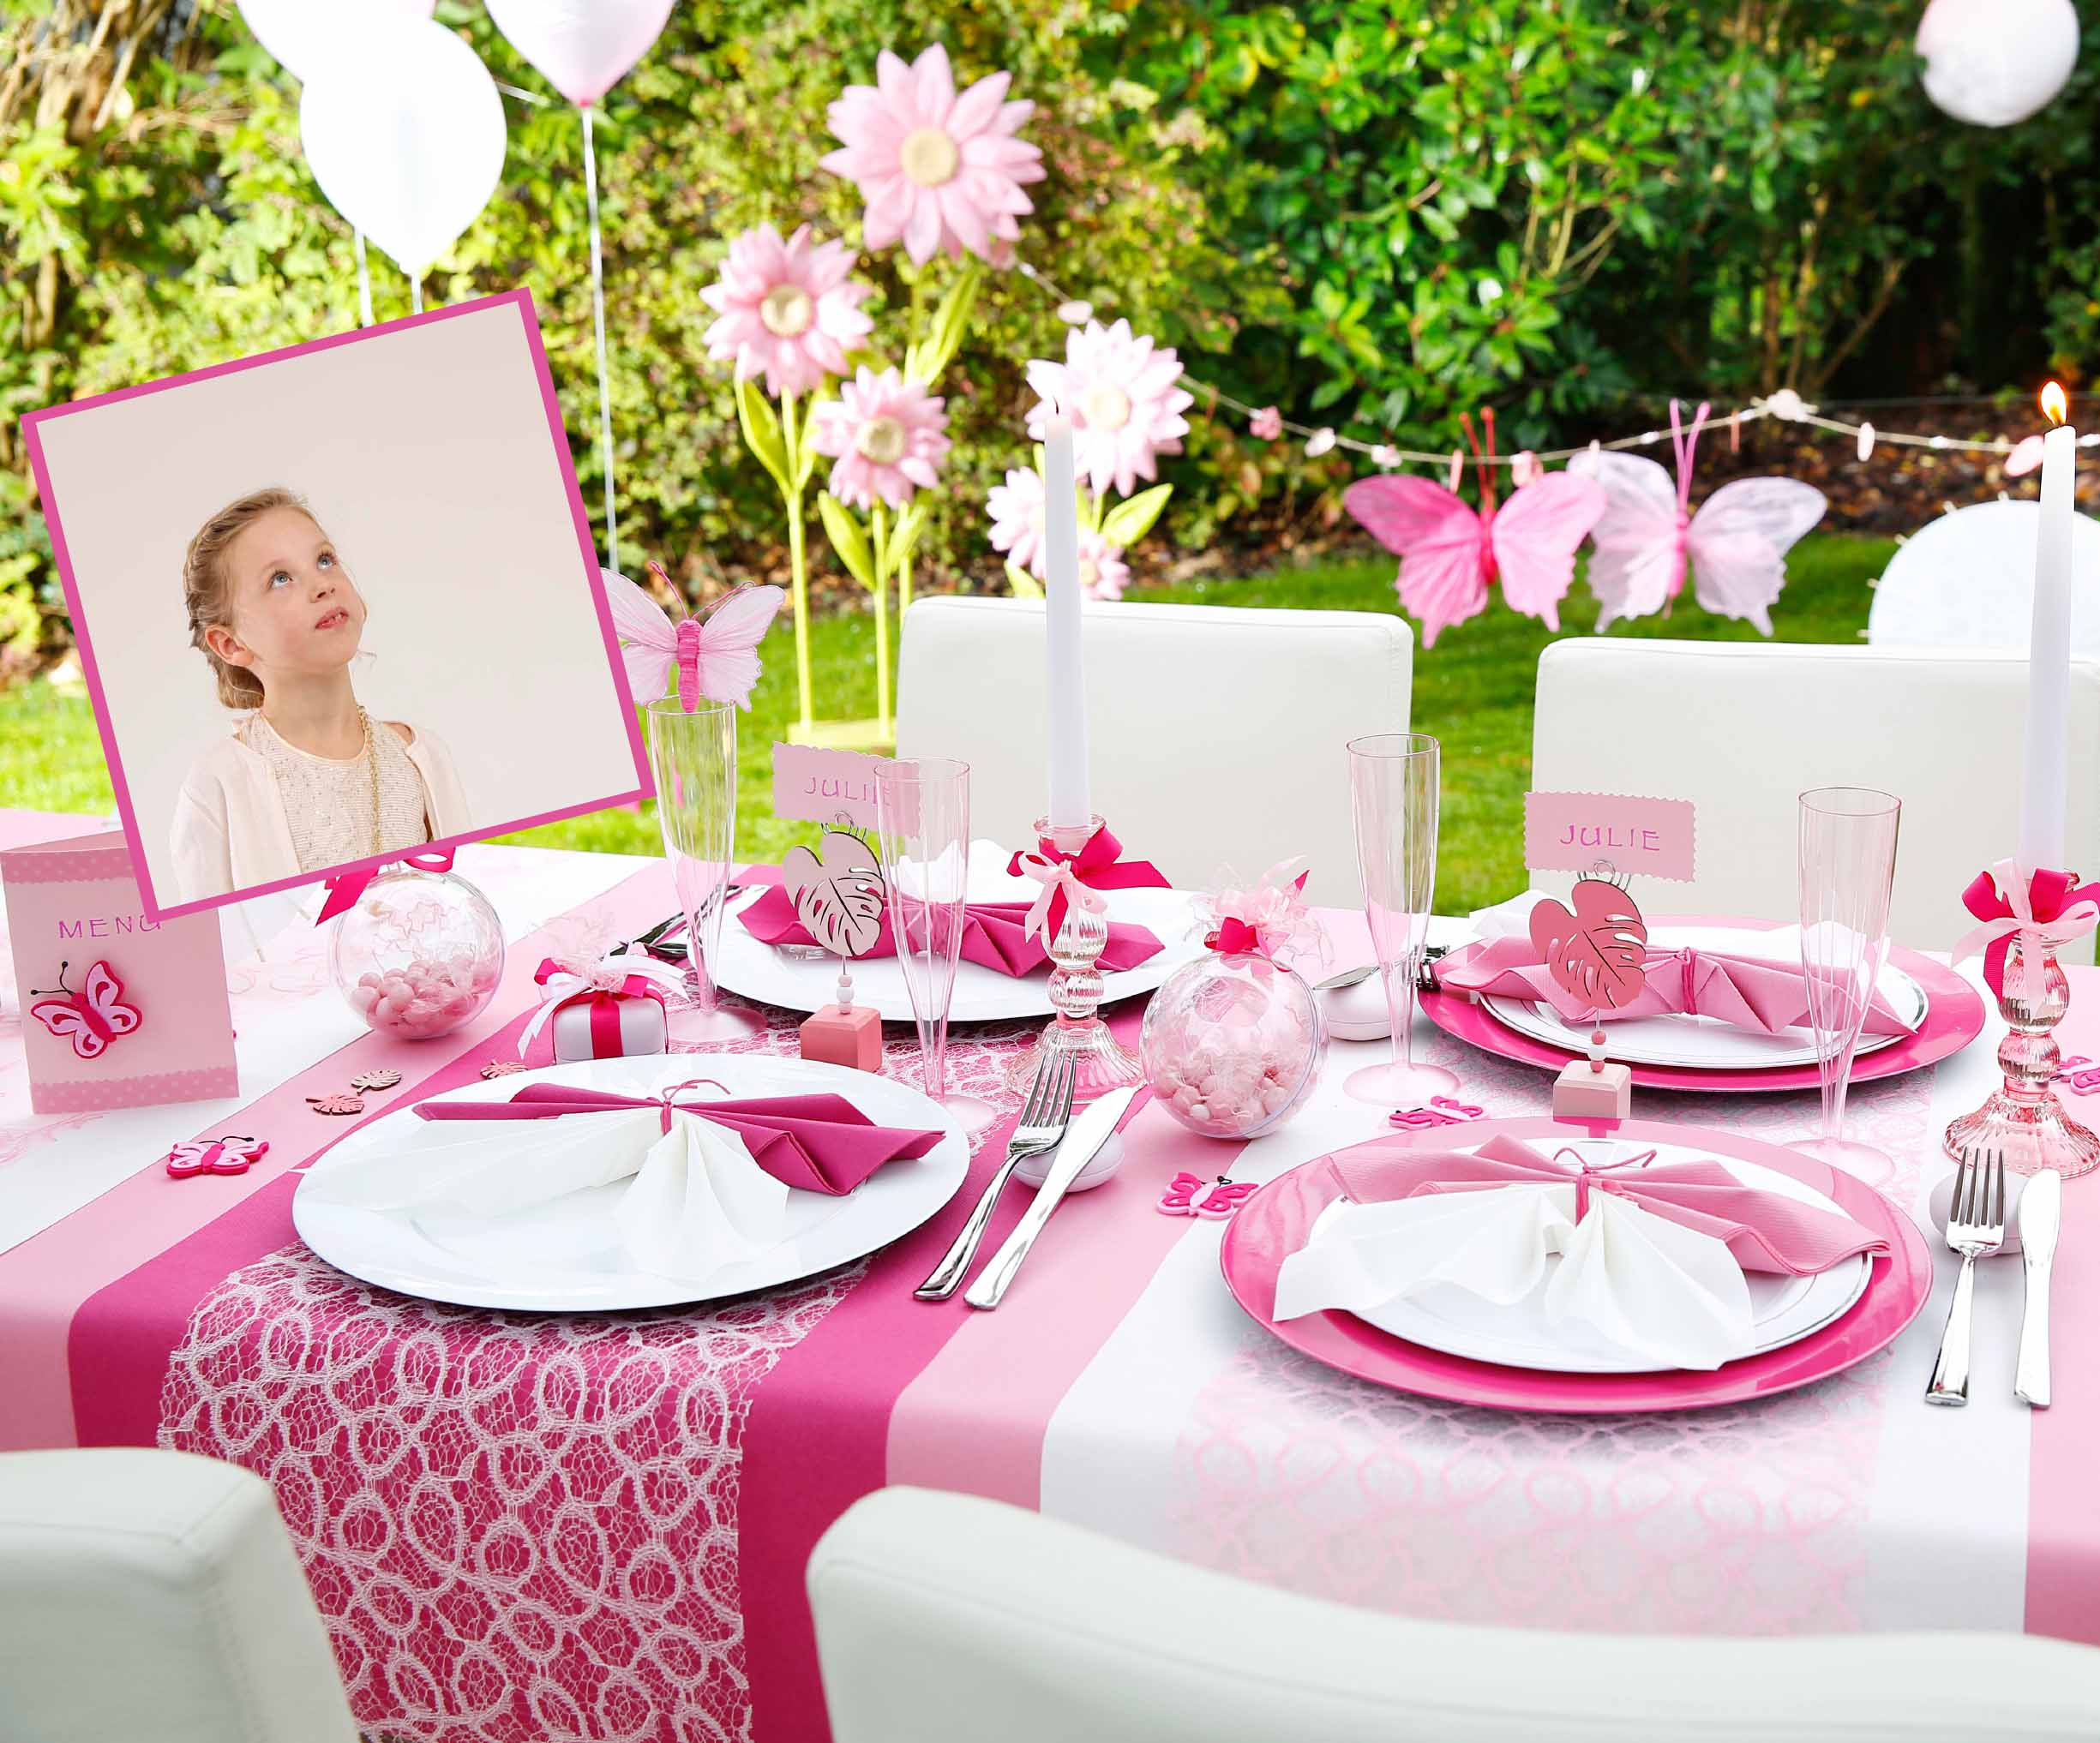 Ma communion ou ma f te la que sera fantastique ava for Idee deco 1ere communion